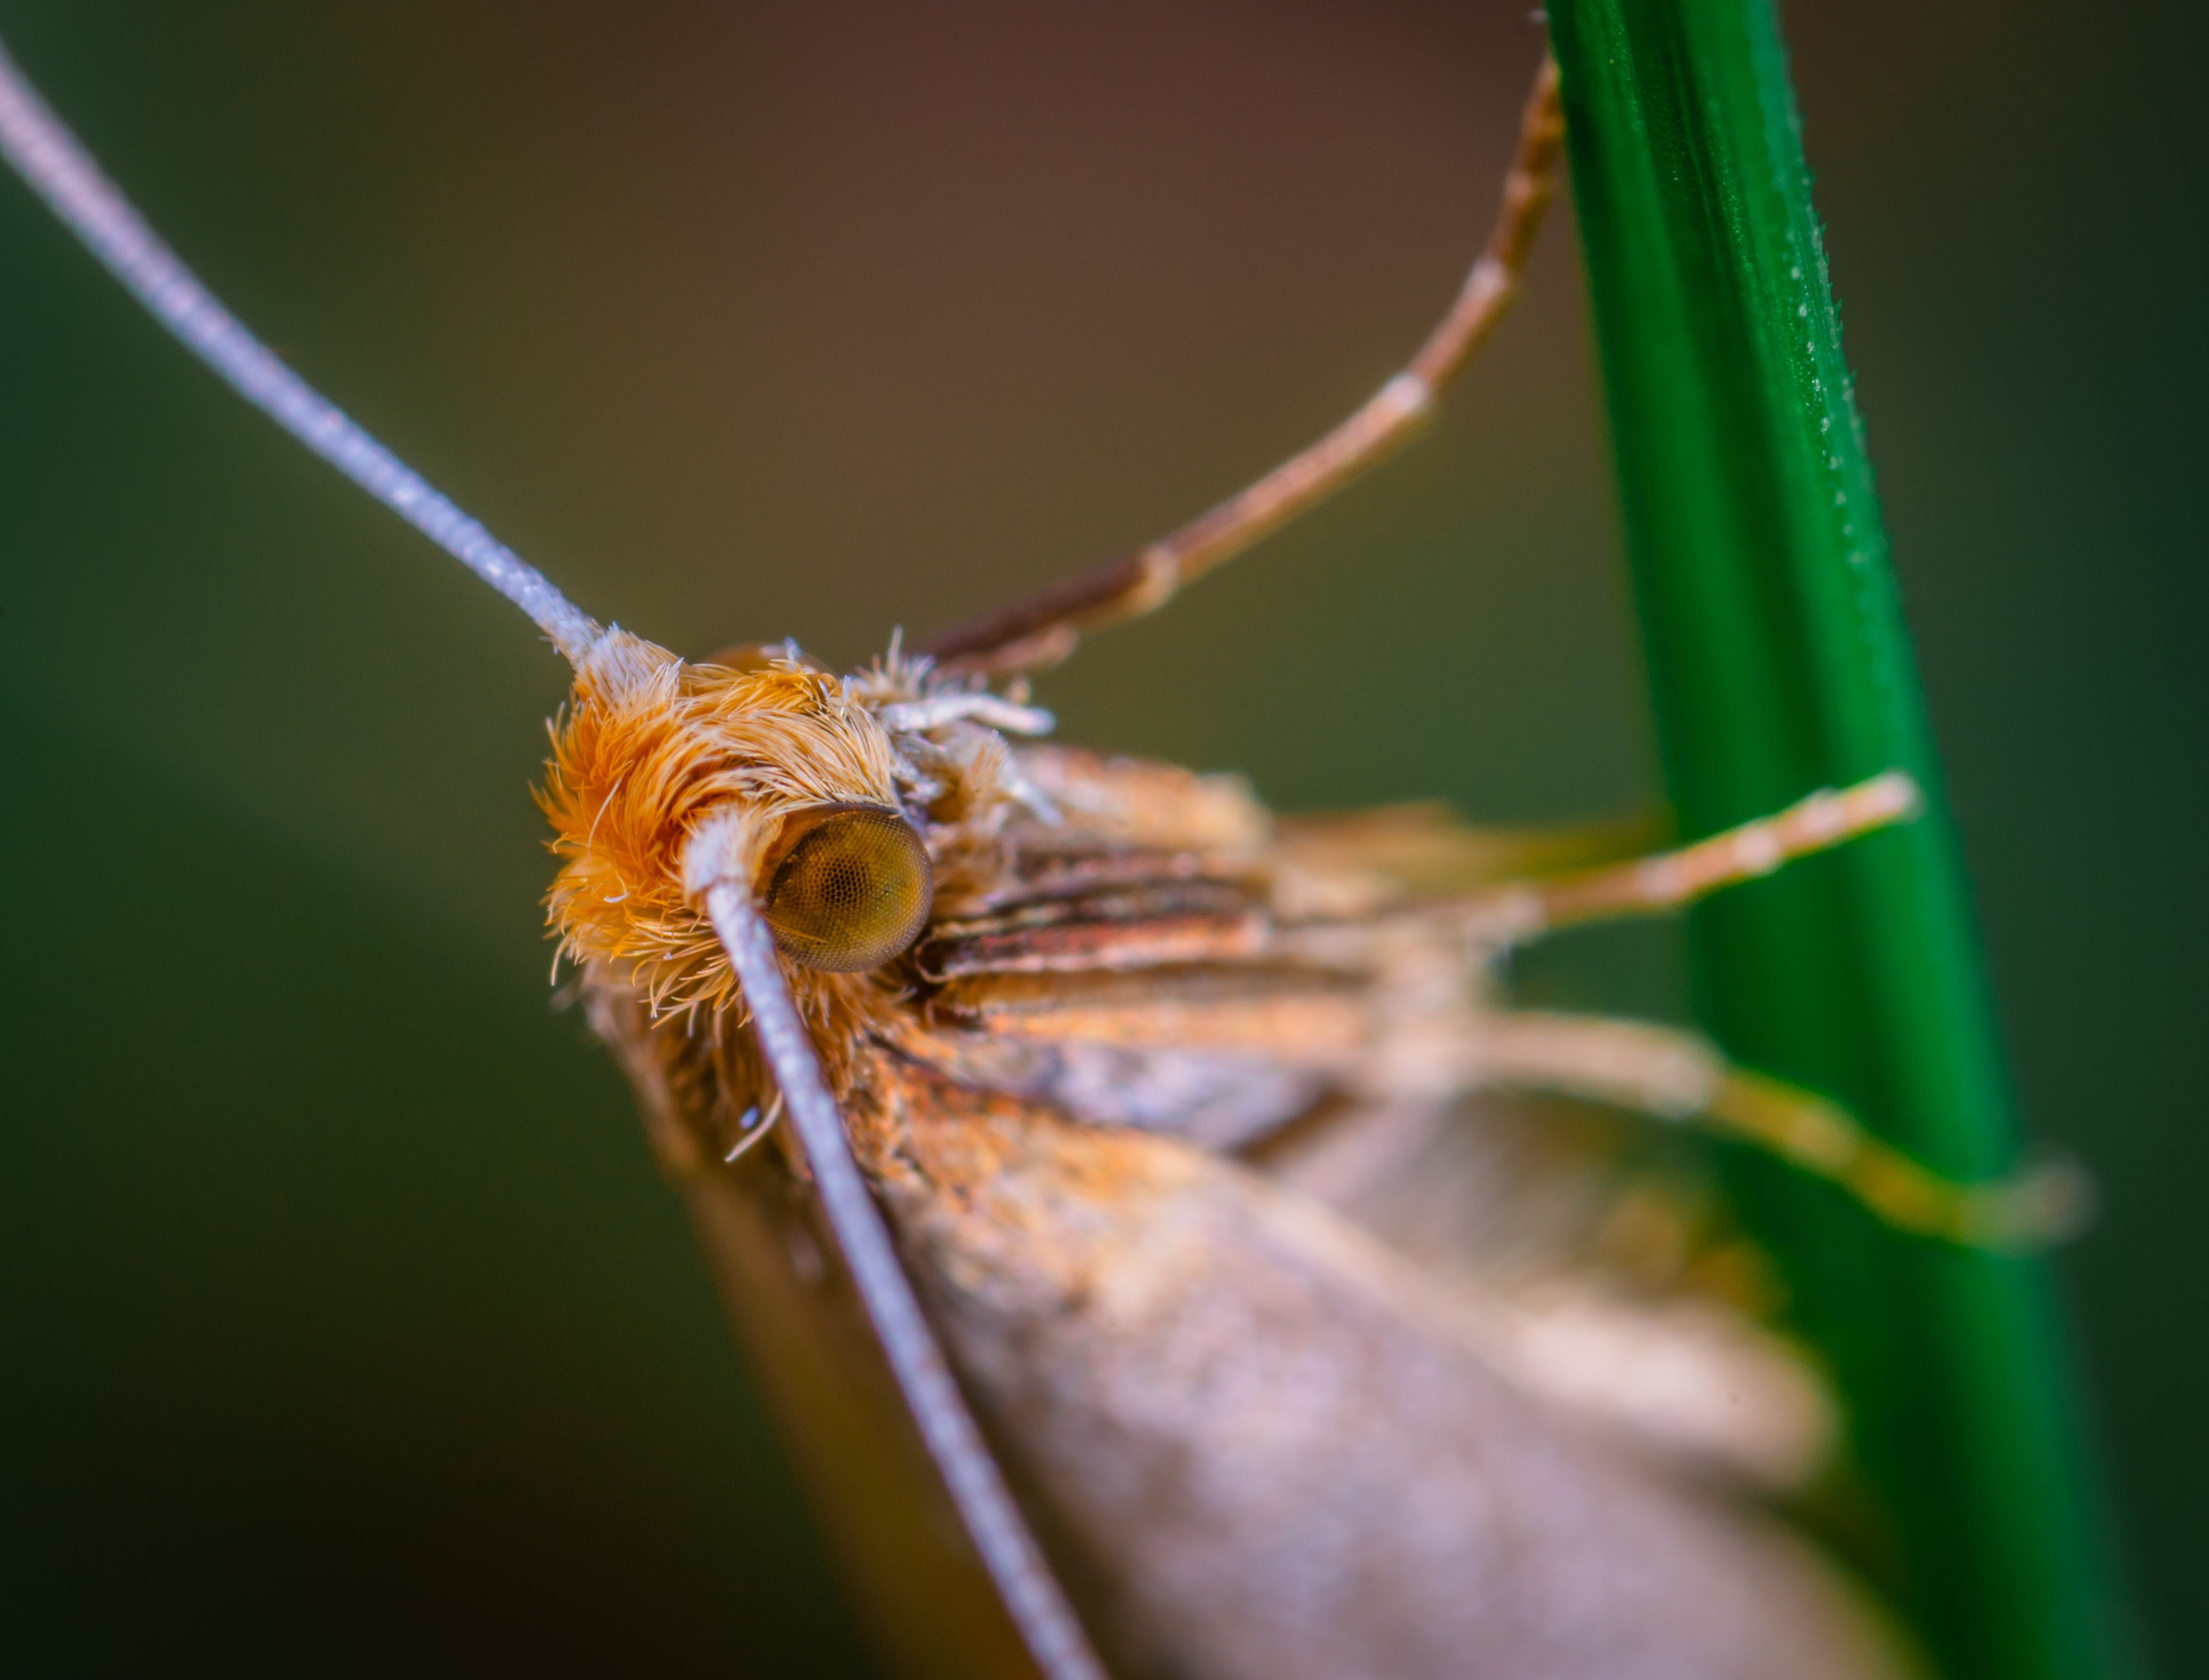 Brown Winged Insect on Green Leaf Plant